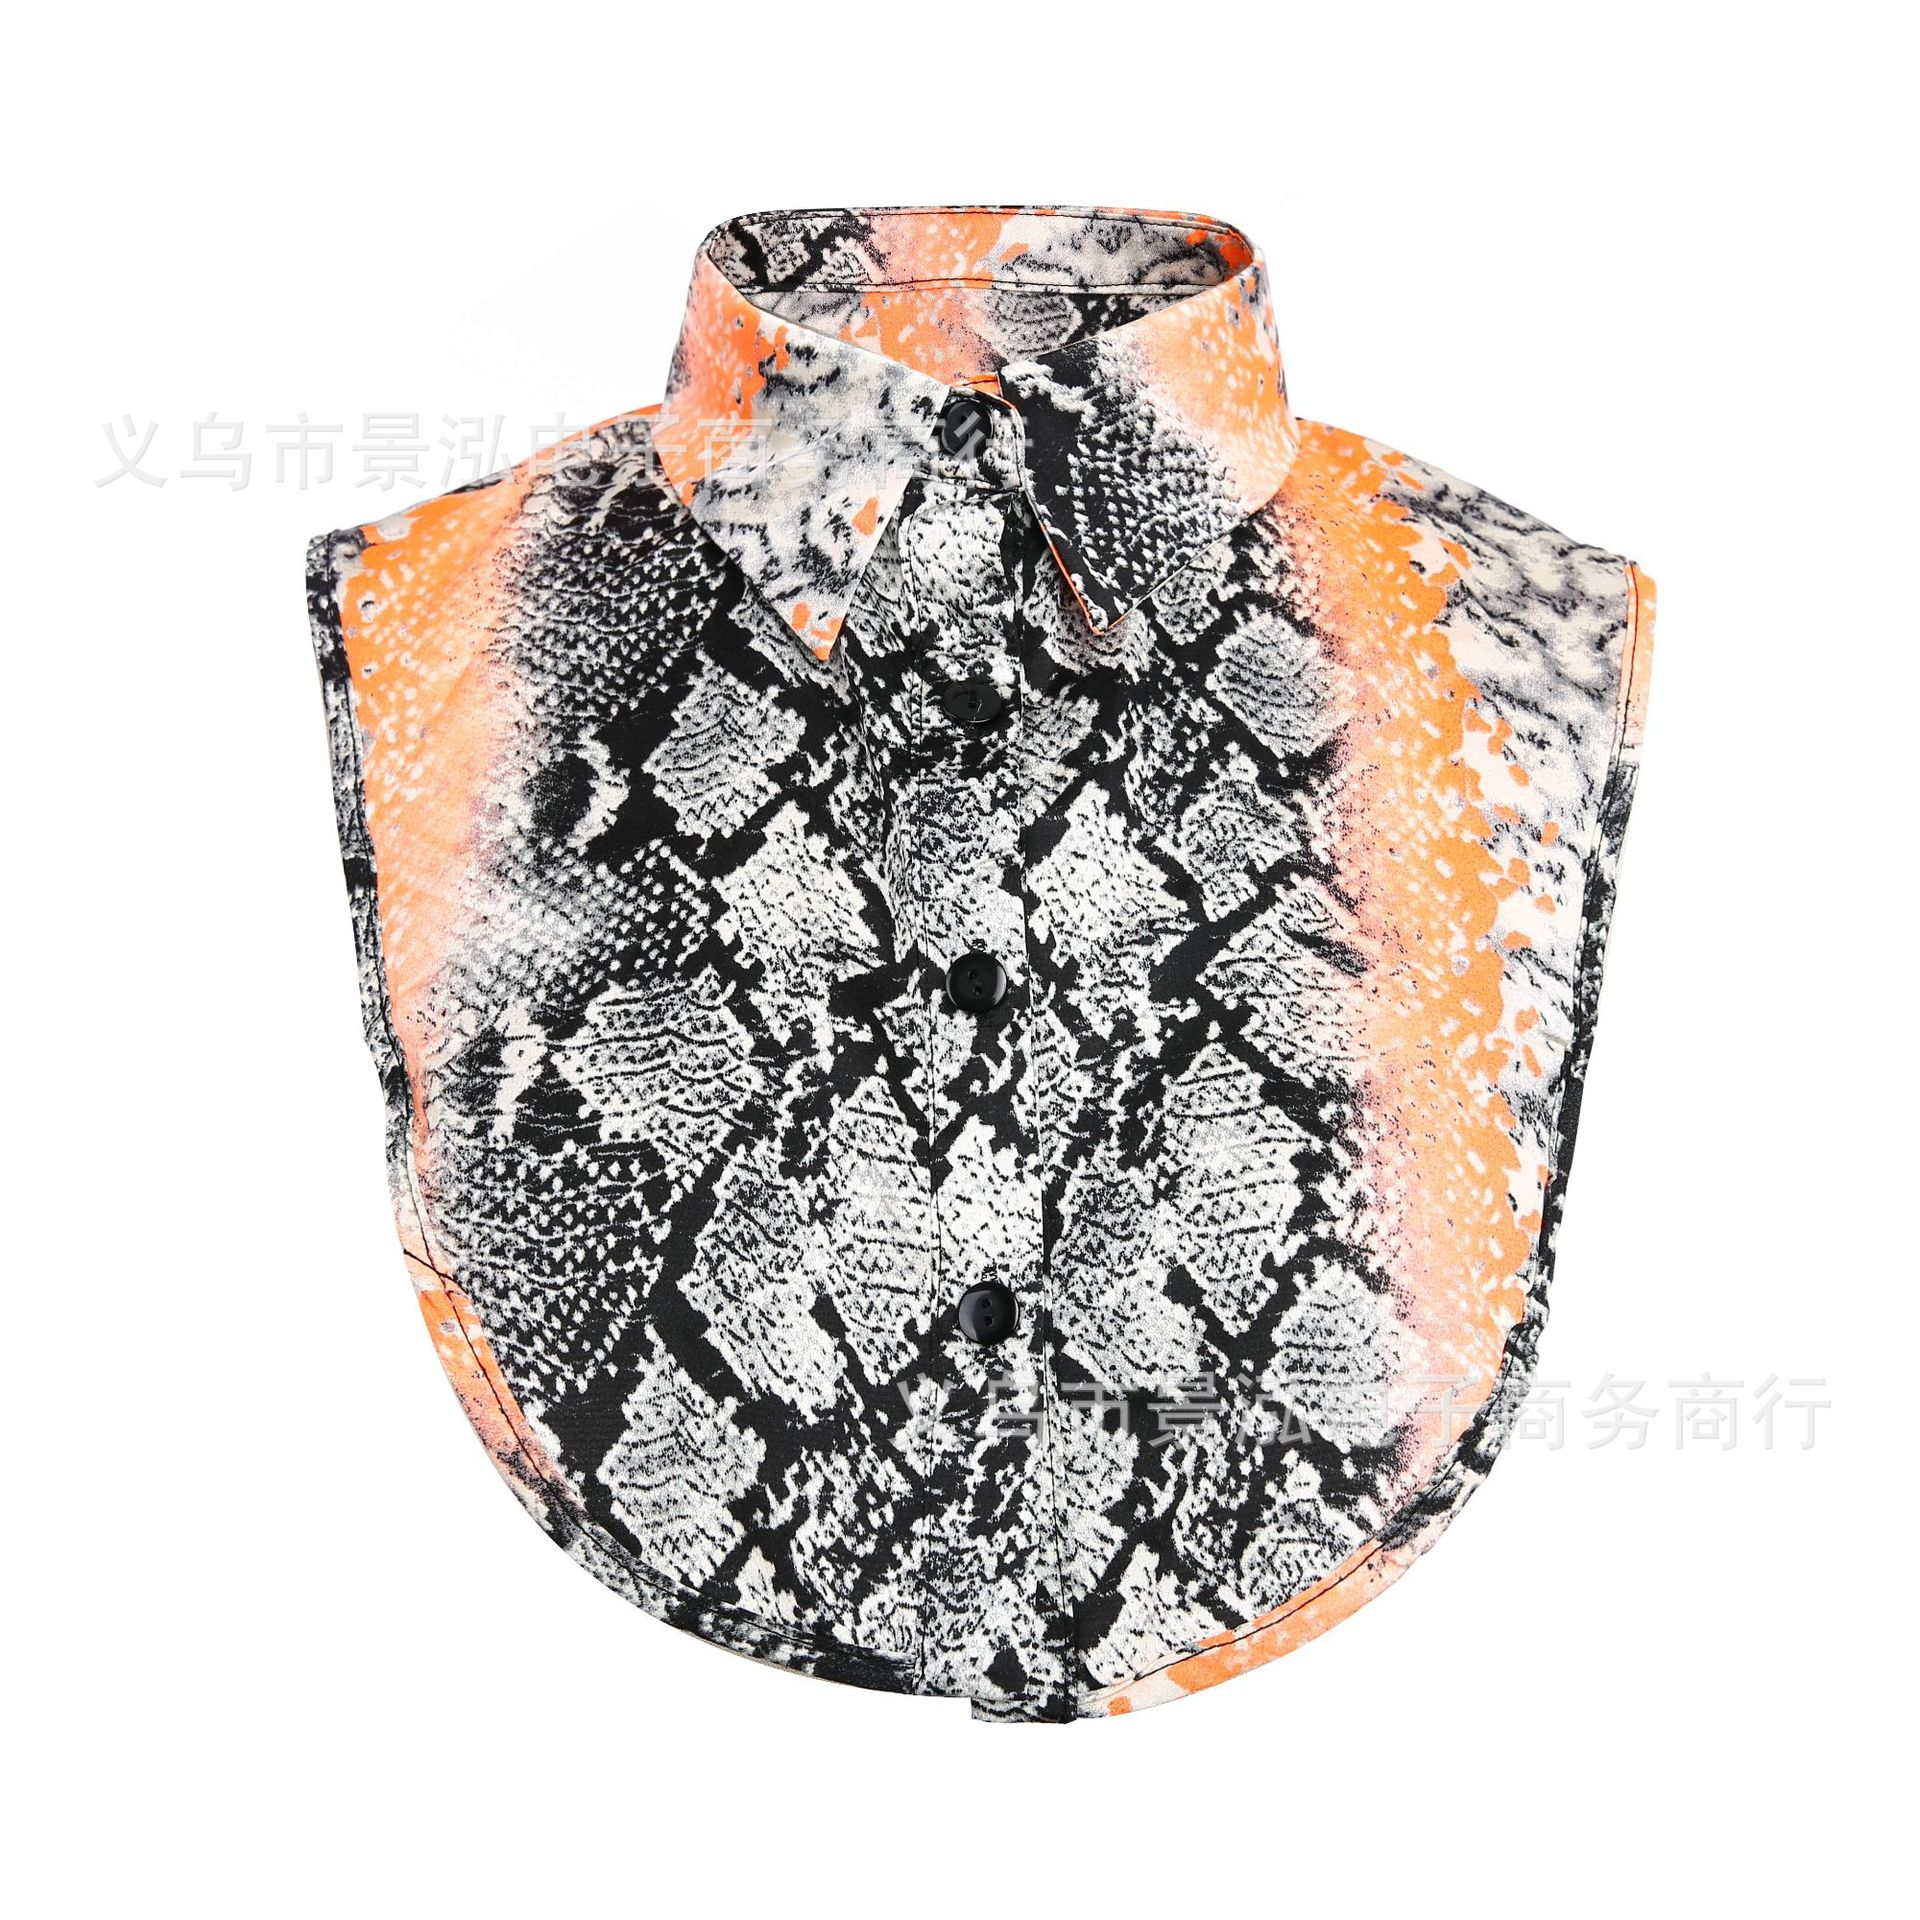 2019 Europe And America Snakeskin Gradient Color's Glitter Candy-Colored False Collar Collar Small Collar Small Clothes Small Un